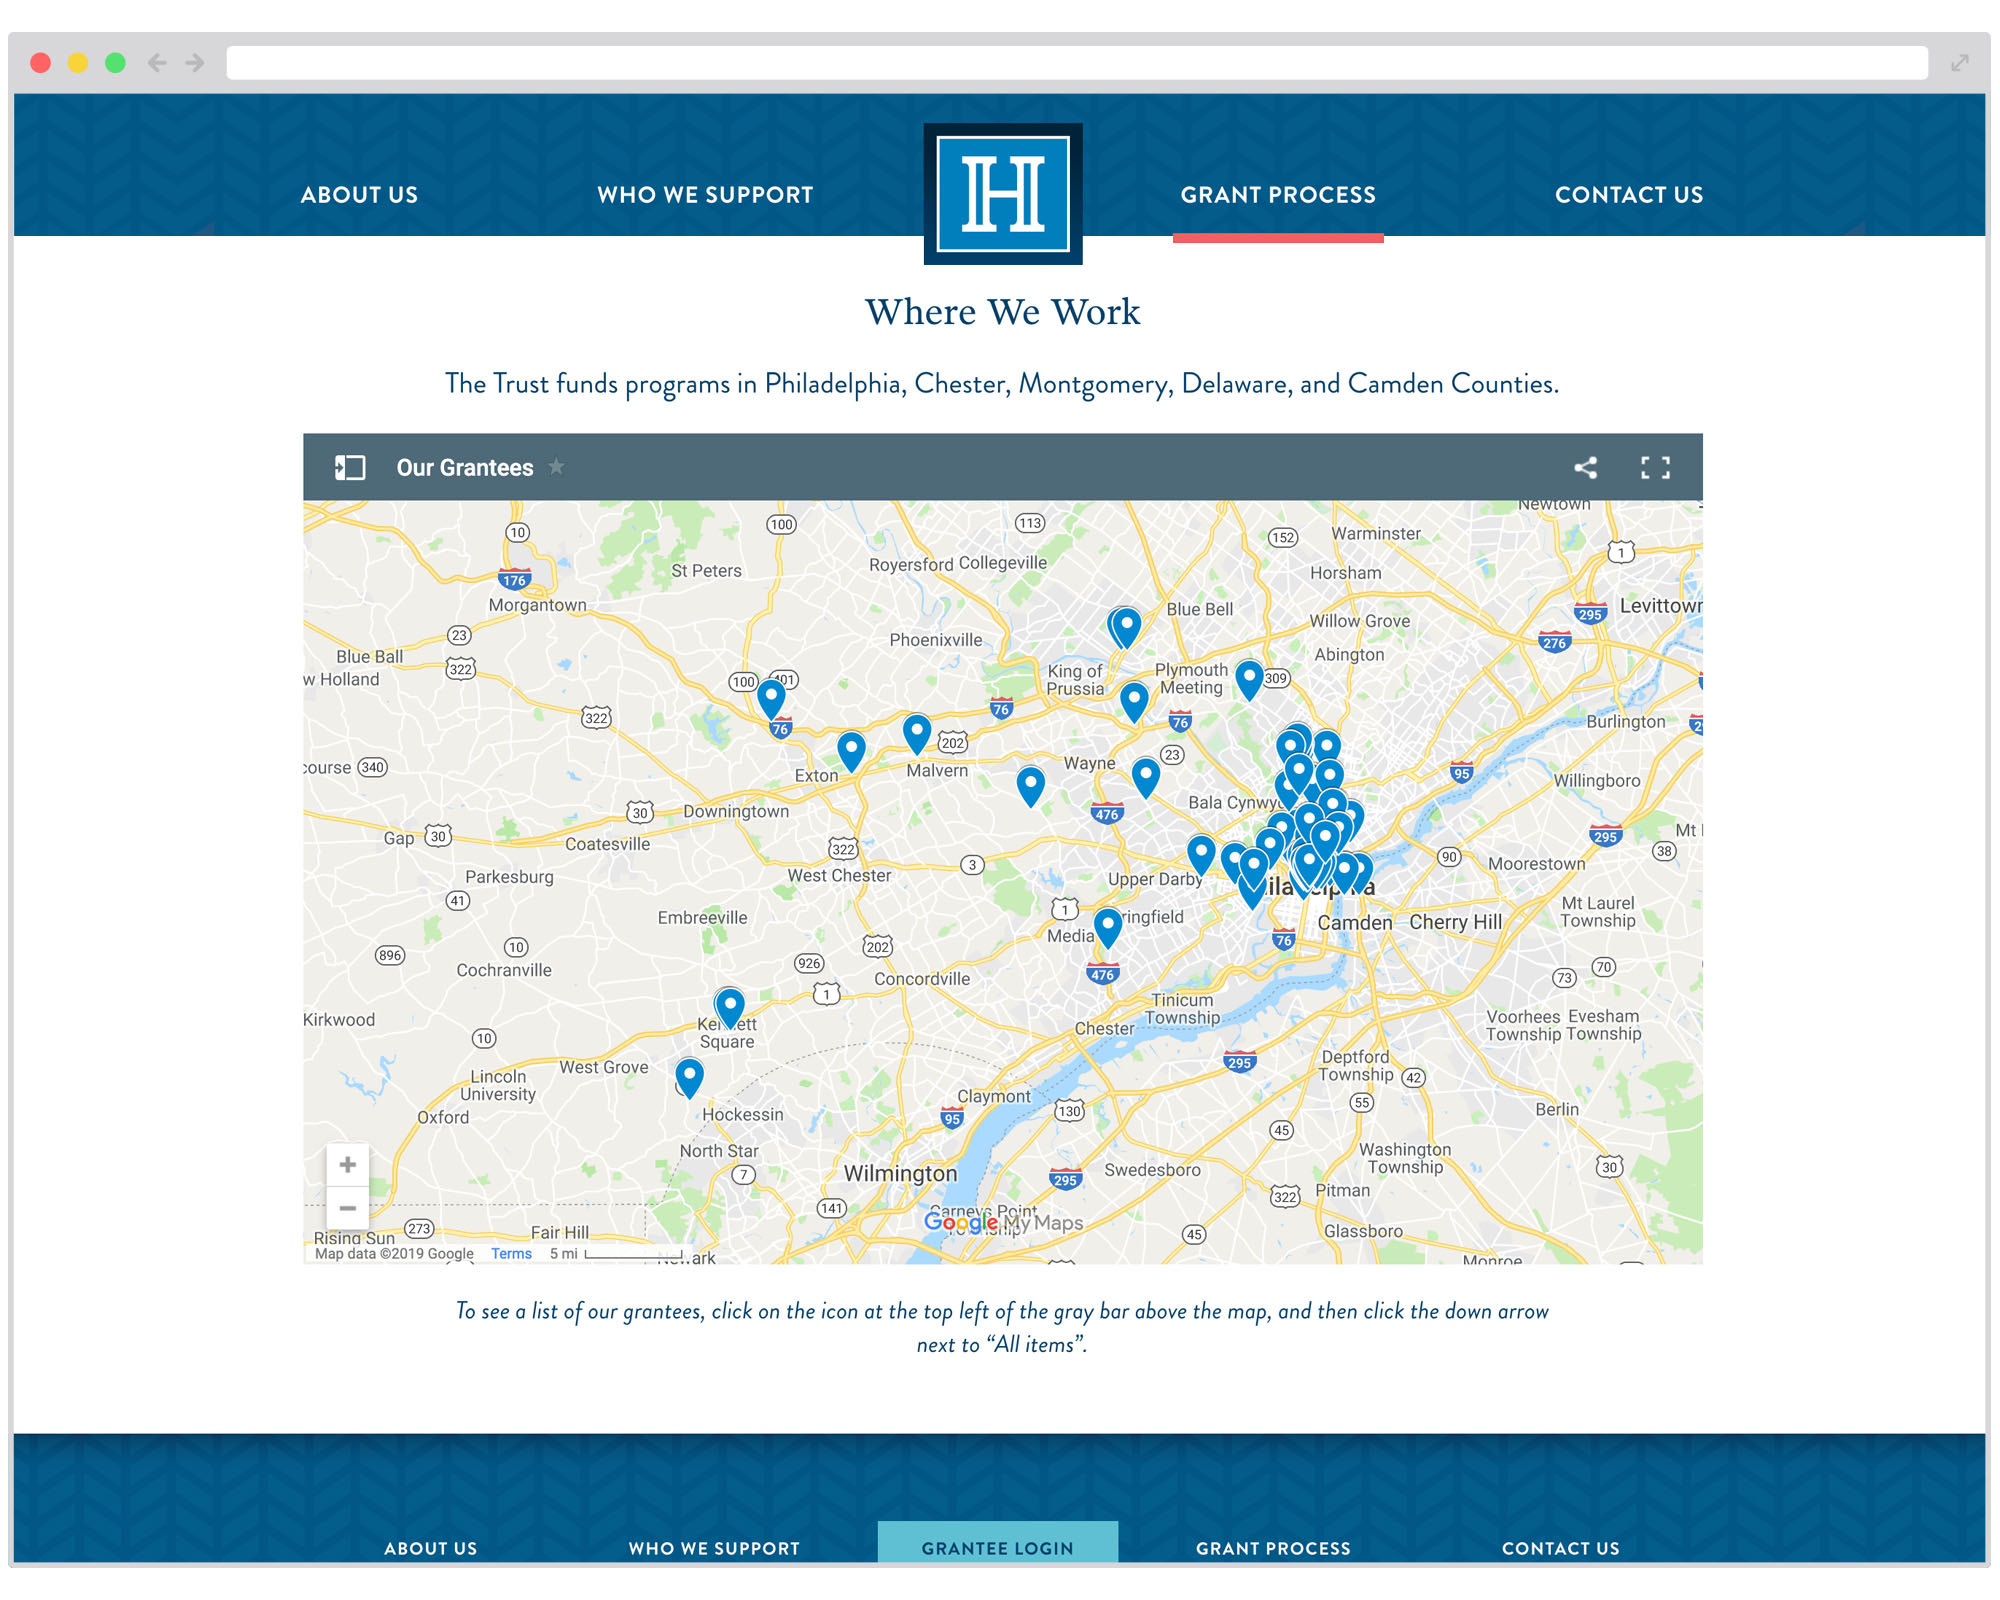 An interactive map of HFCT's grantees shows the reach of their grantmaking.